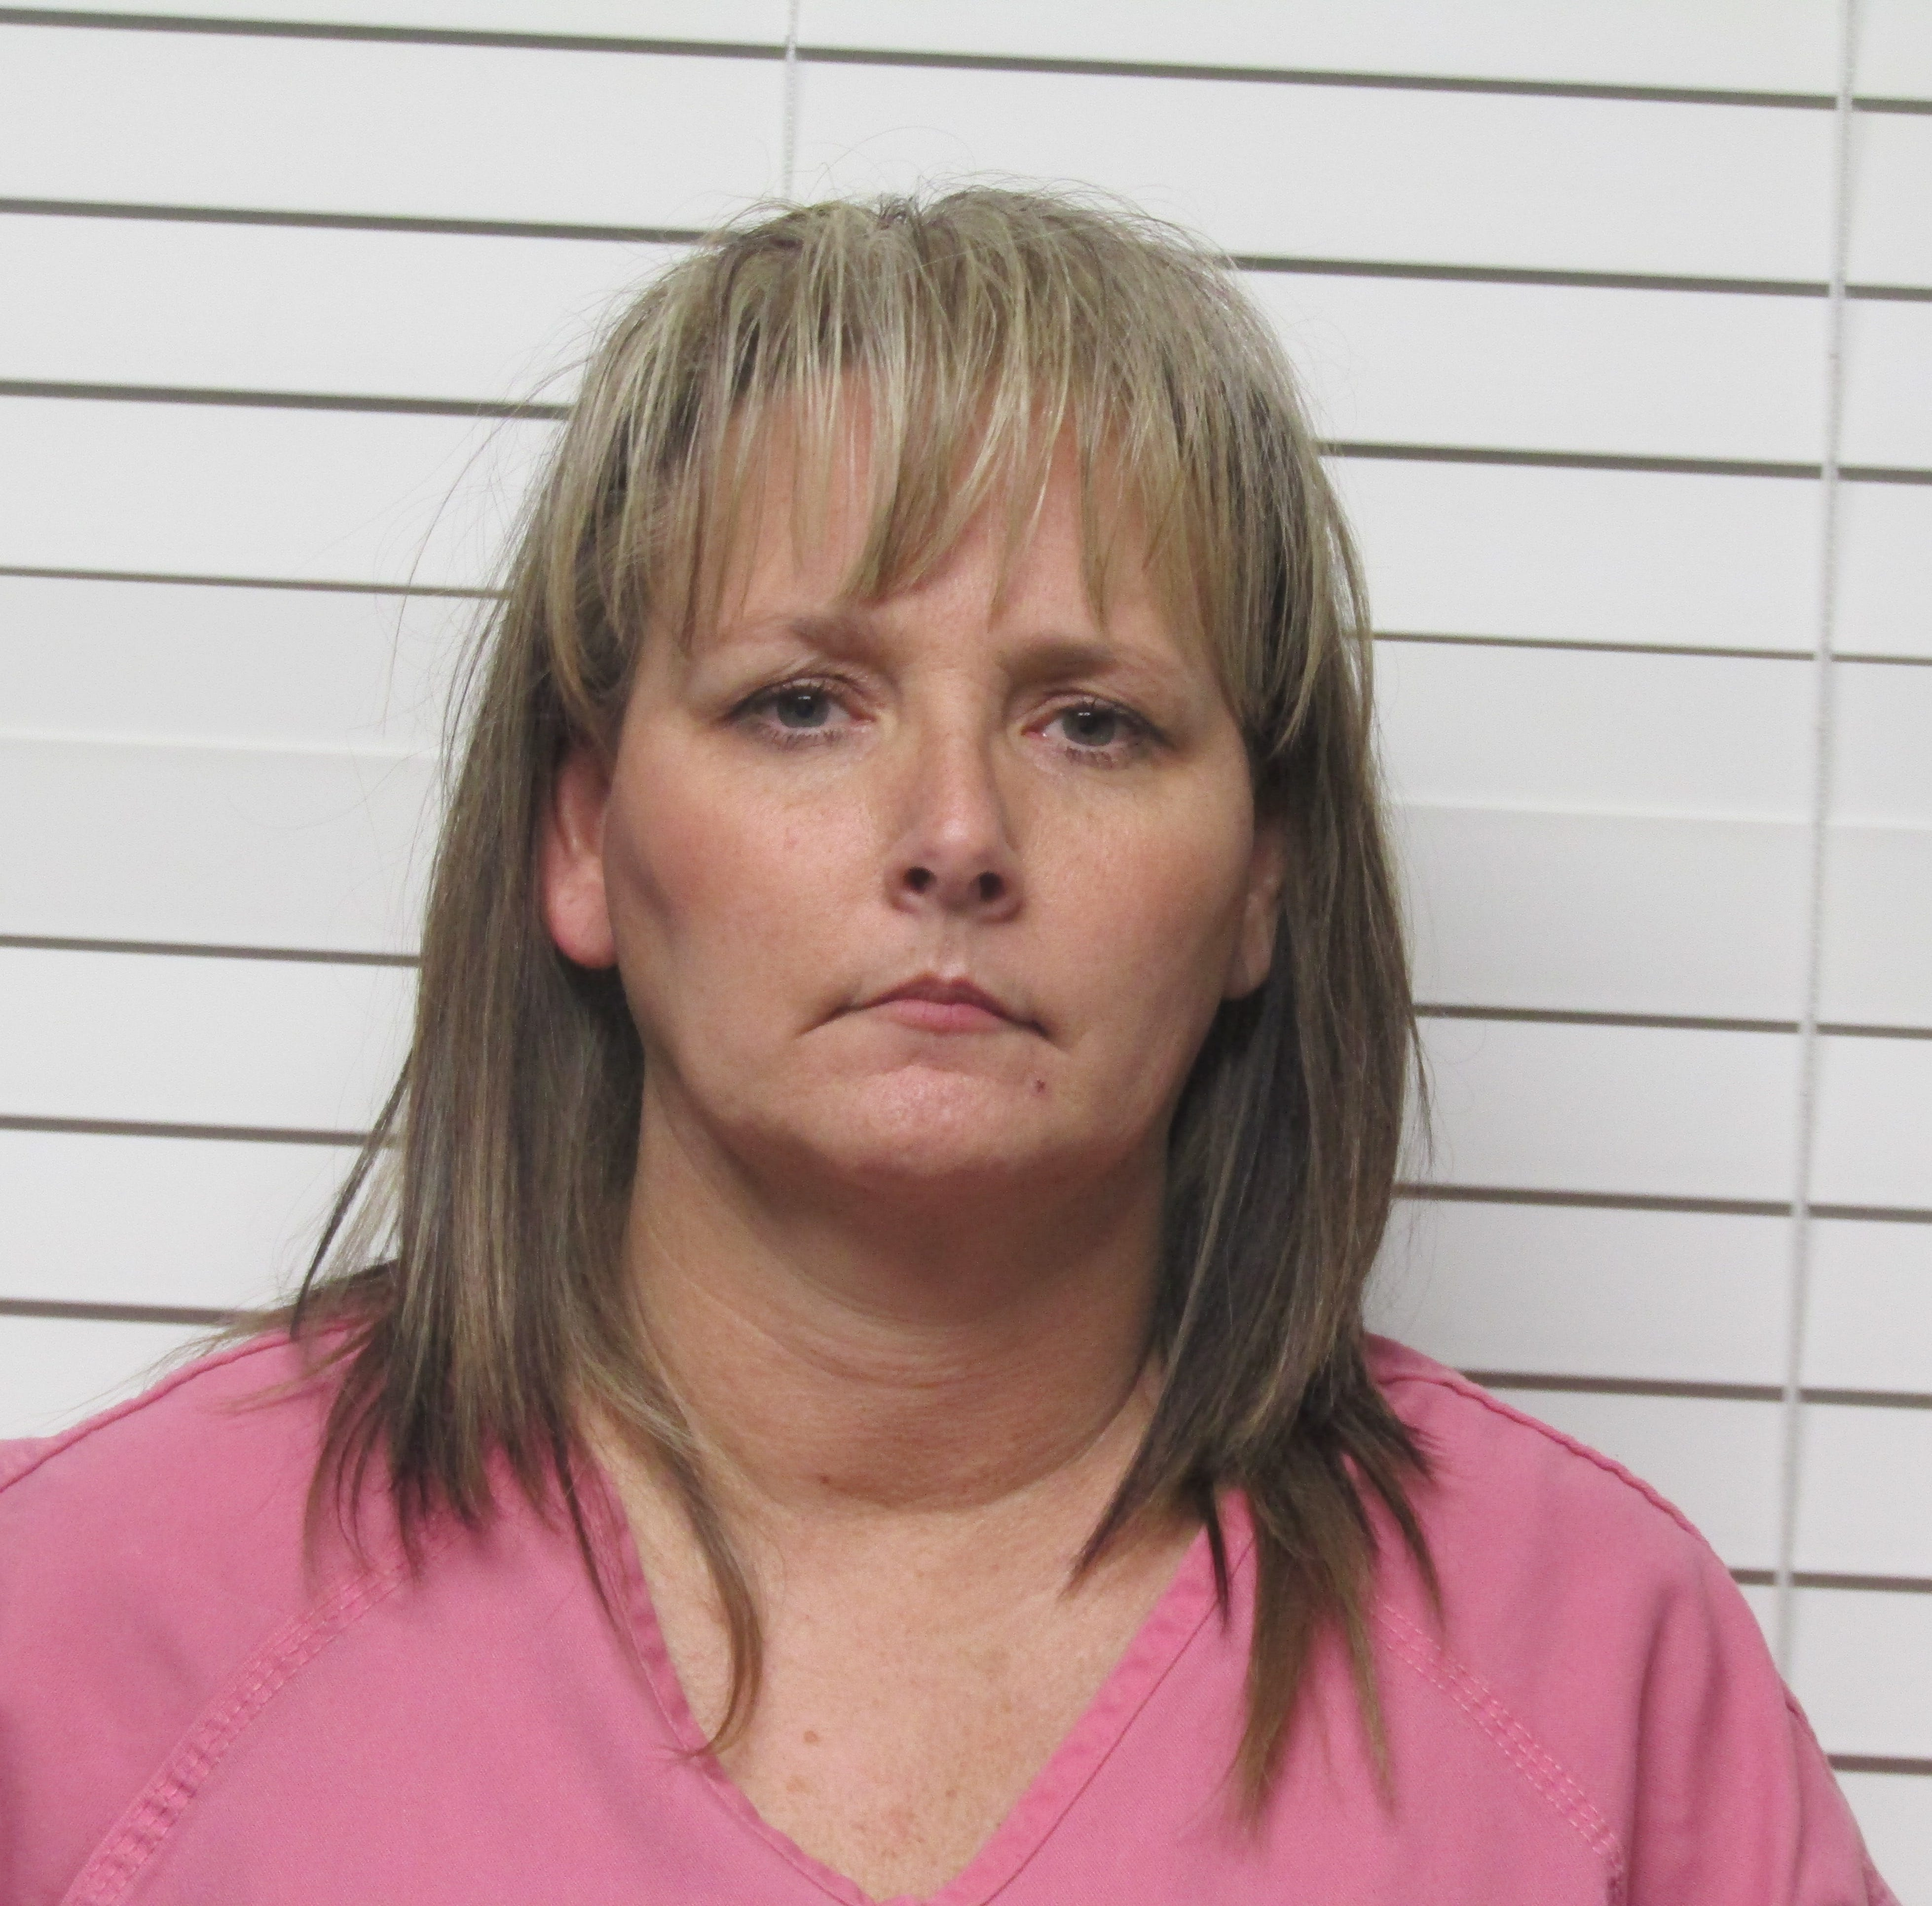 Employee stole almost $30,000 from Ozark business, deputies say